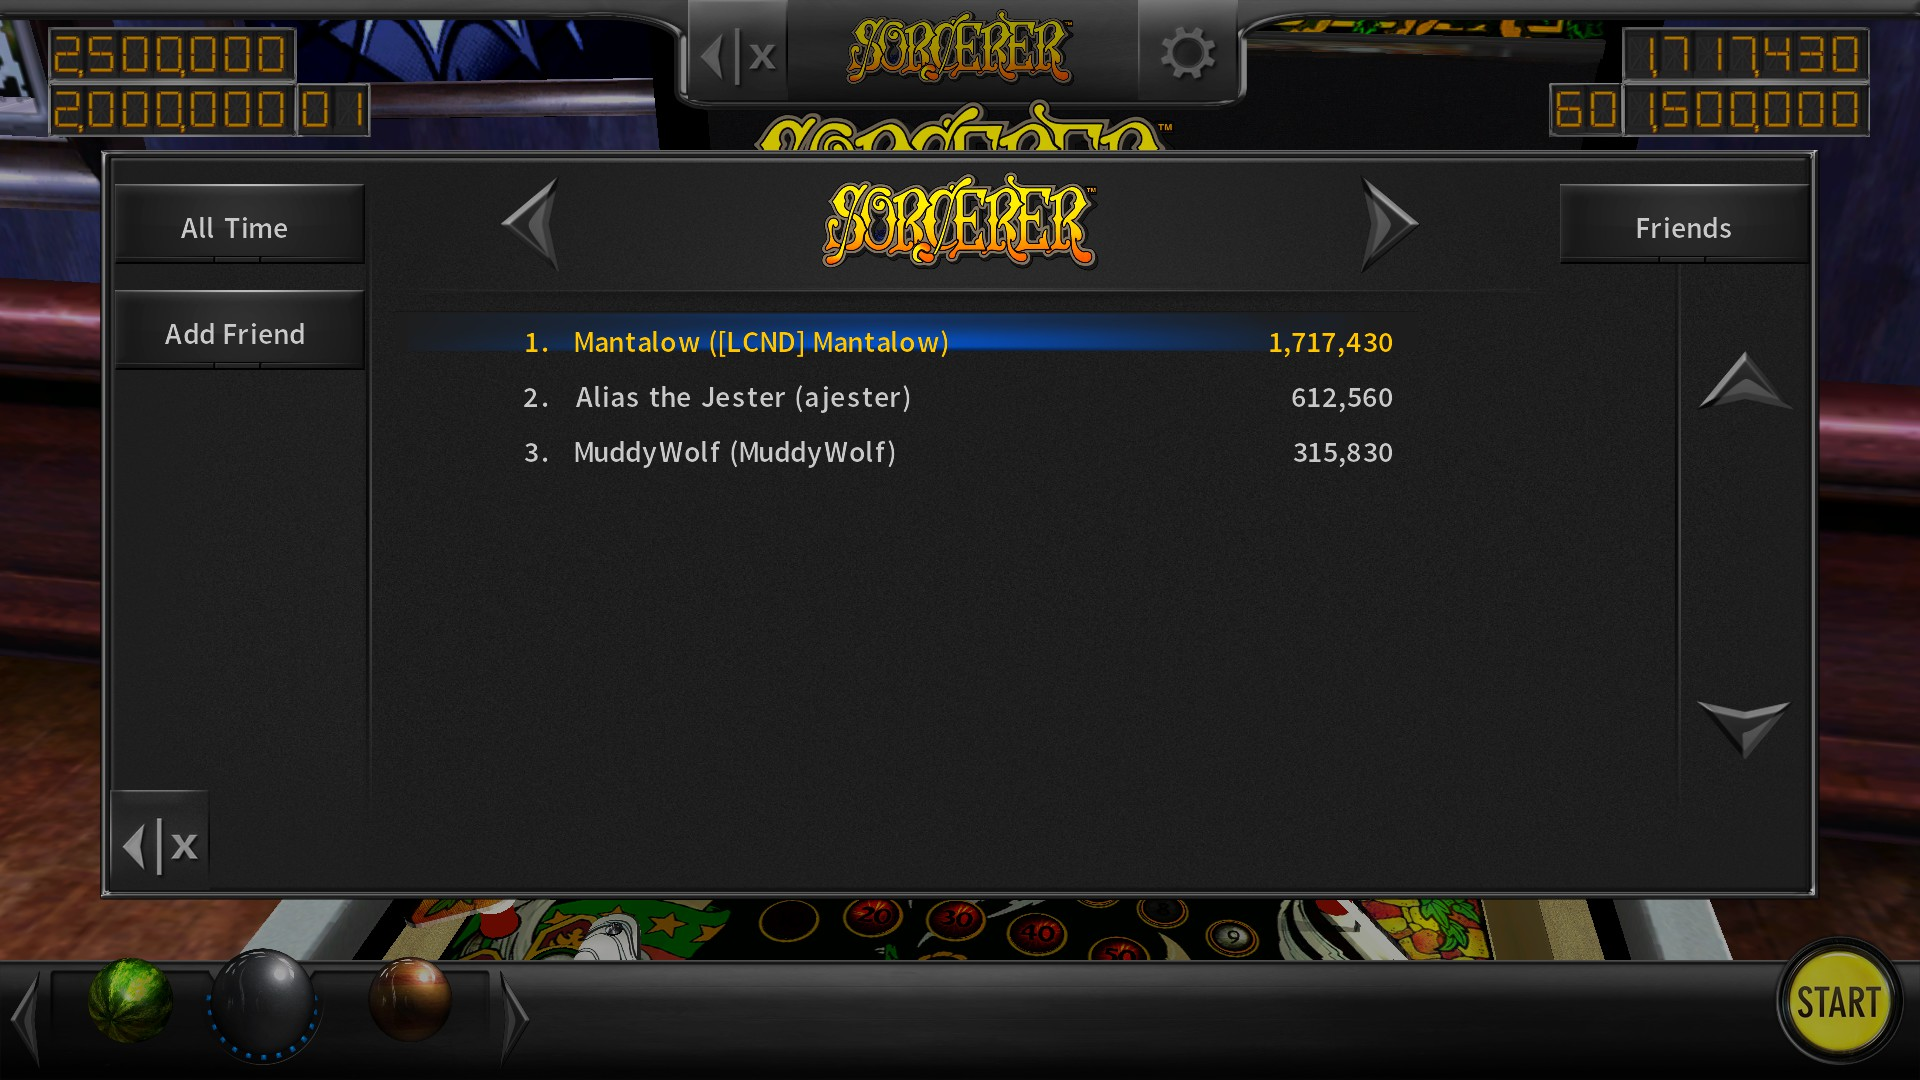 Mantalow: Pinball Arcade: Sorcerer (PC) 1,717,430 points on 2018-02-12 04:51:24